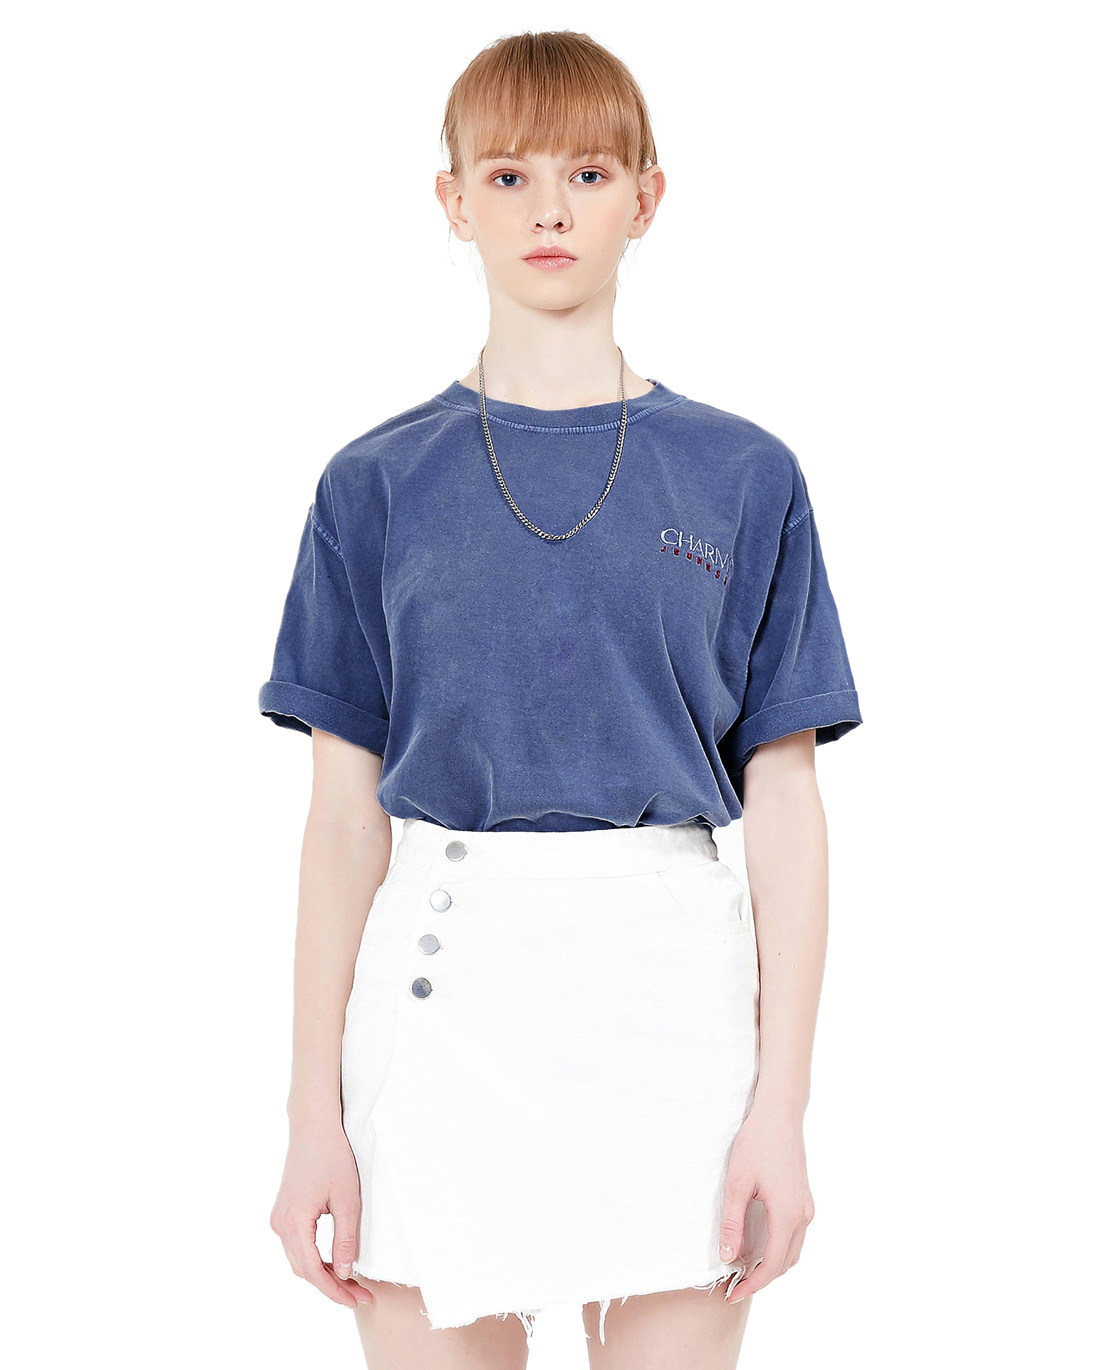 Jeunesse x Charms Small Logo Tee Blue